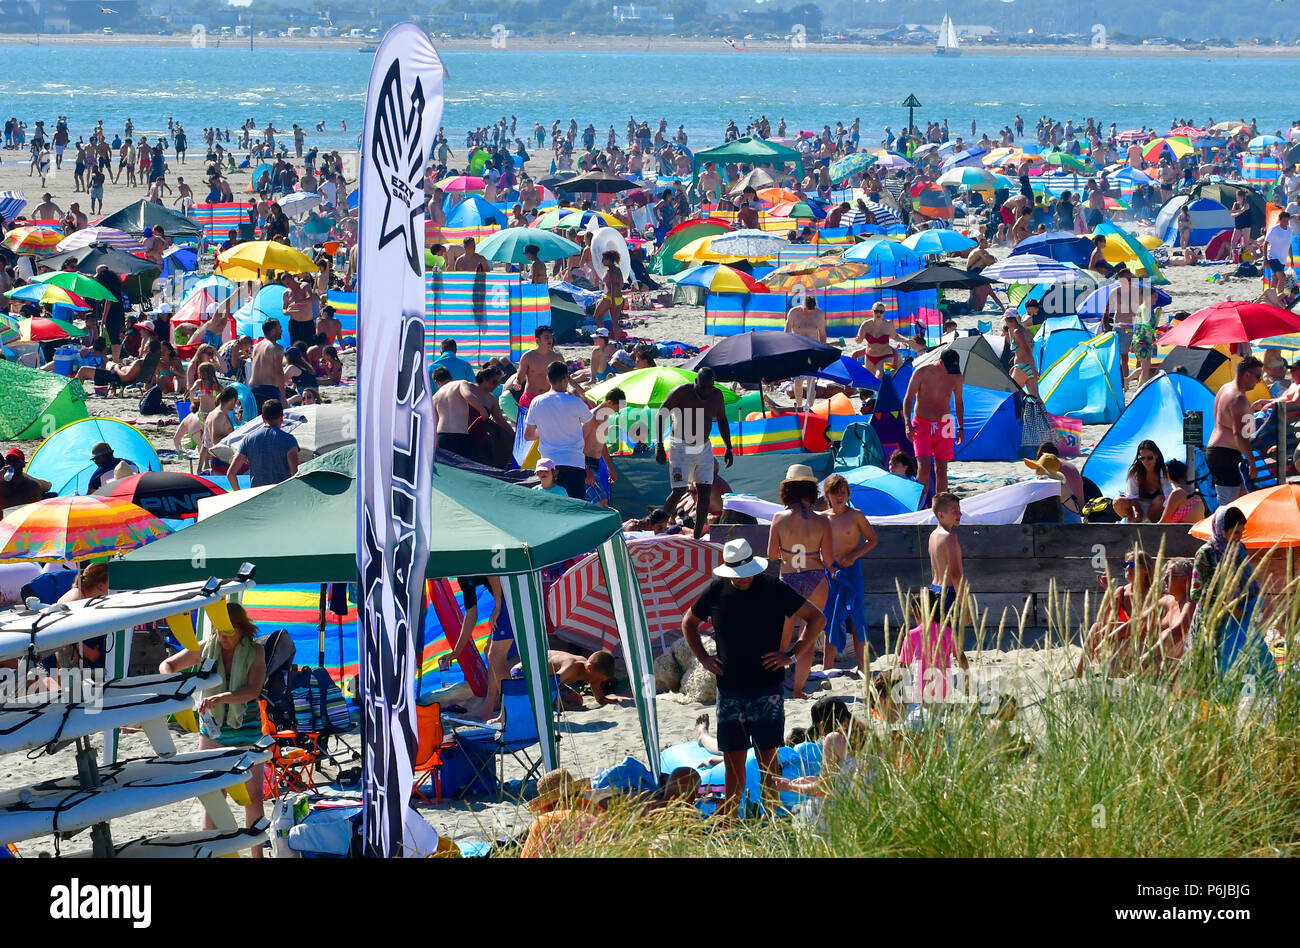 West Wittering beach   on a hot summers weekend in july ,packed with day trippers enjoying the heatwave and swimming in the sparkling water on its Blue Flag beach - Stock Image